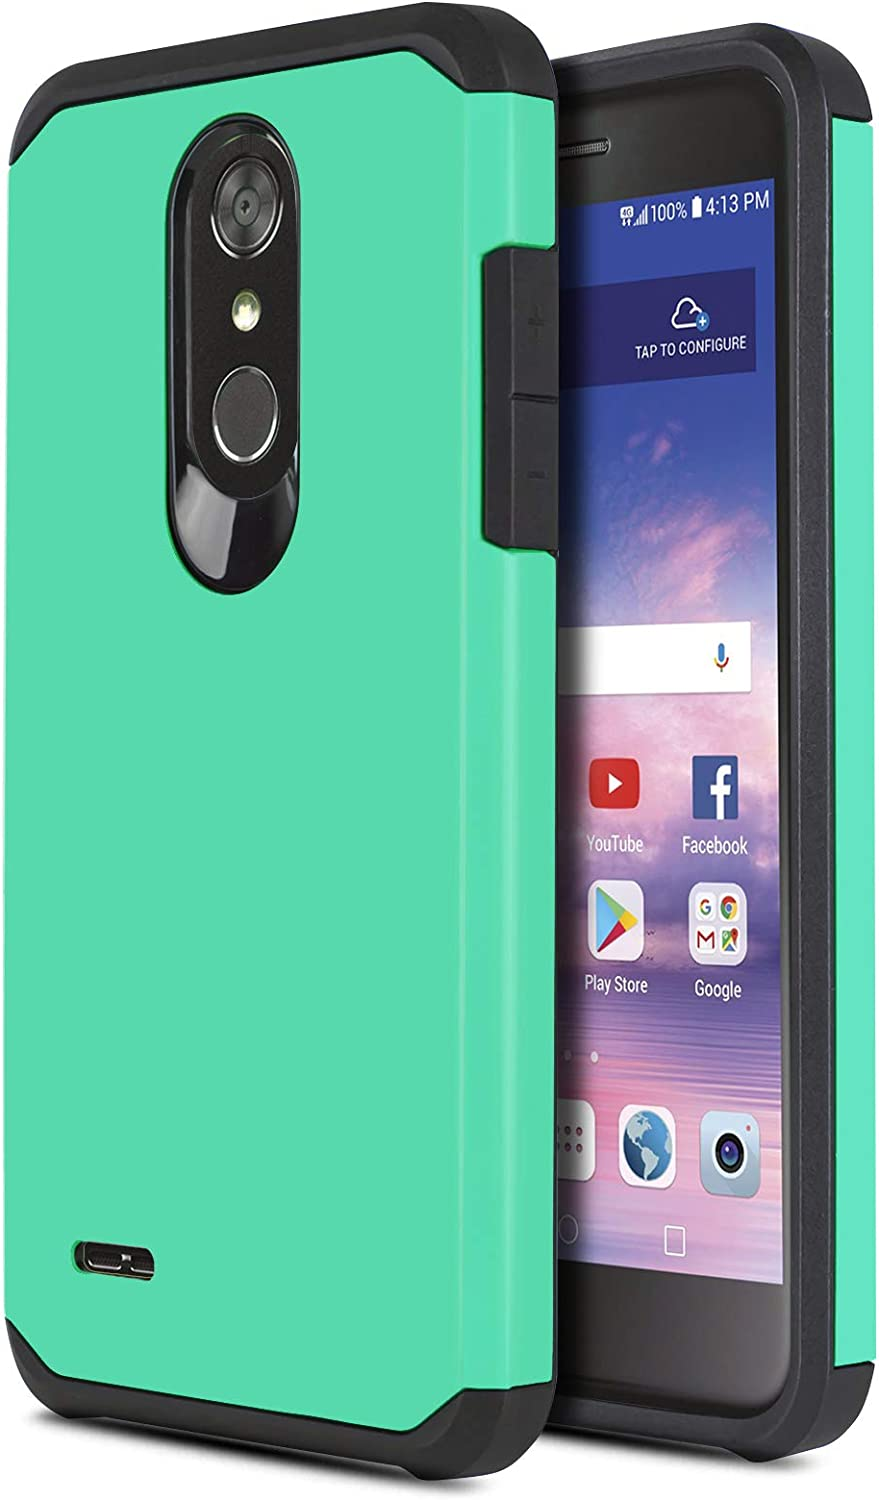 CasemartUSA Phone Case for [LG Premier PRO (L413DL,L414DL)], [DuoTEK Series][Turquoise] Shockproof Cover for LG Premier Pro LTE (Tracfone, Simple Mobile, Straight Talk, Total Wireless)